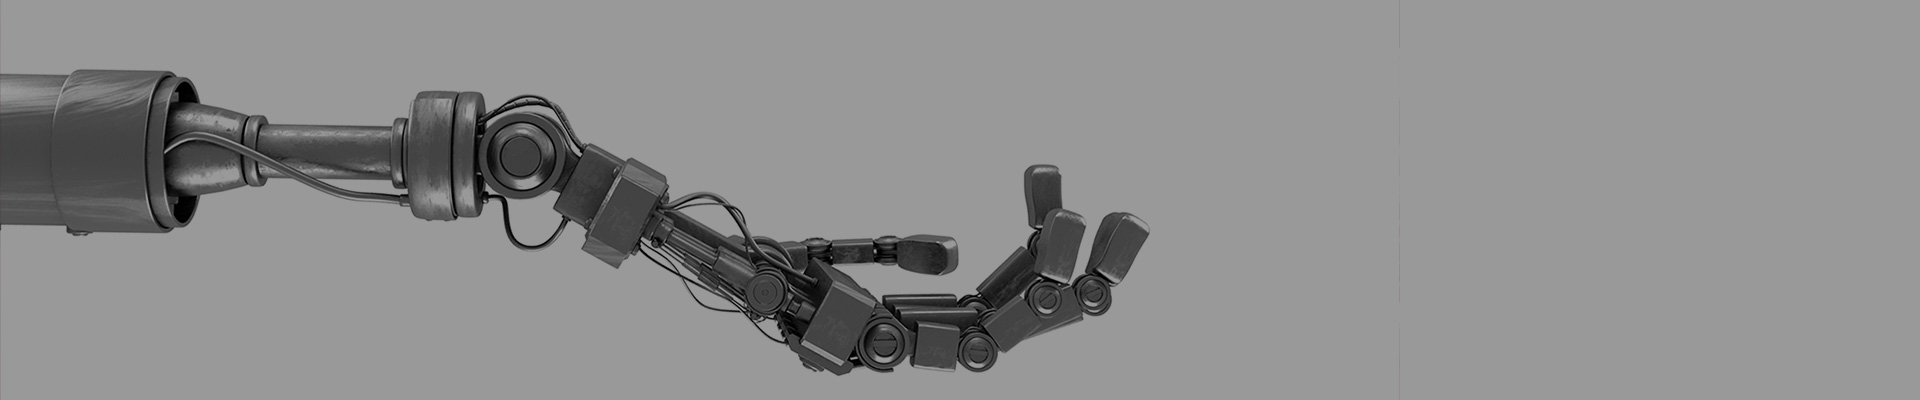 headerrobotics